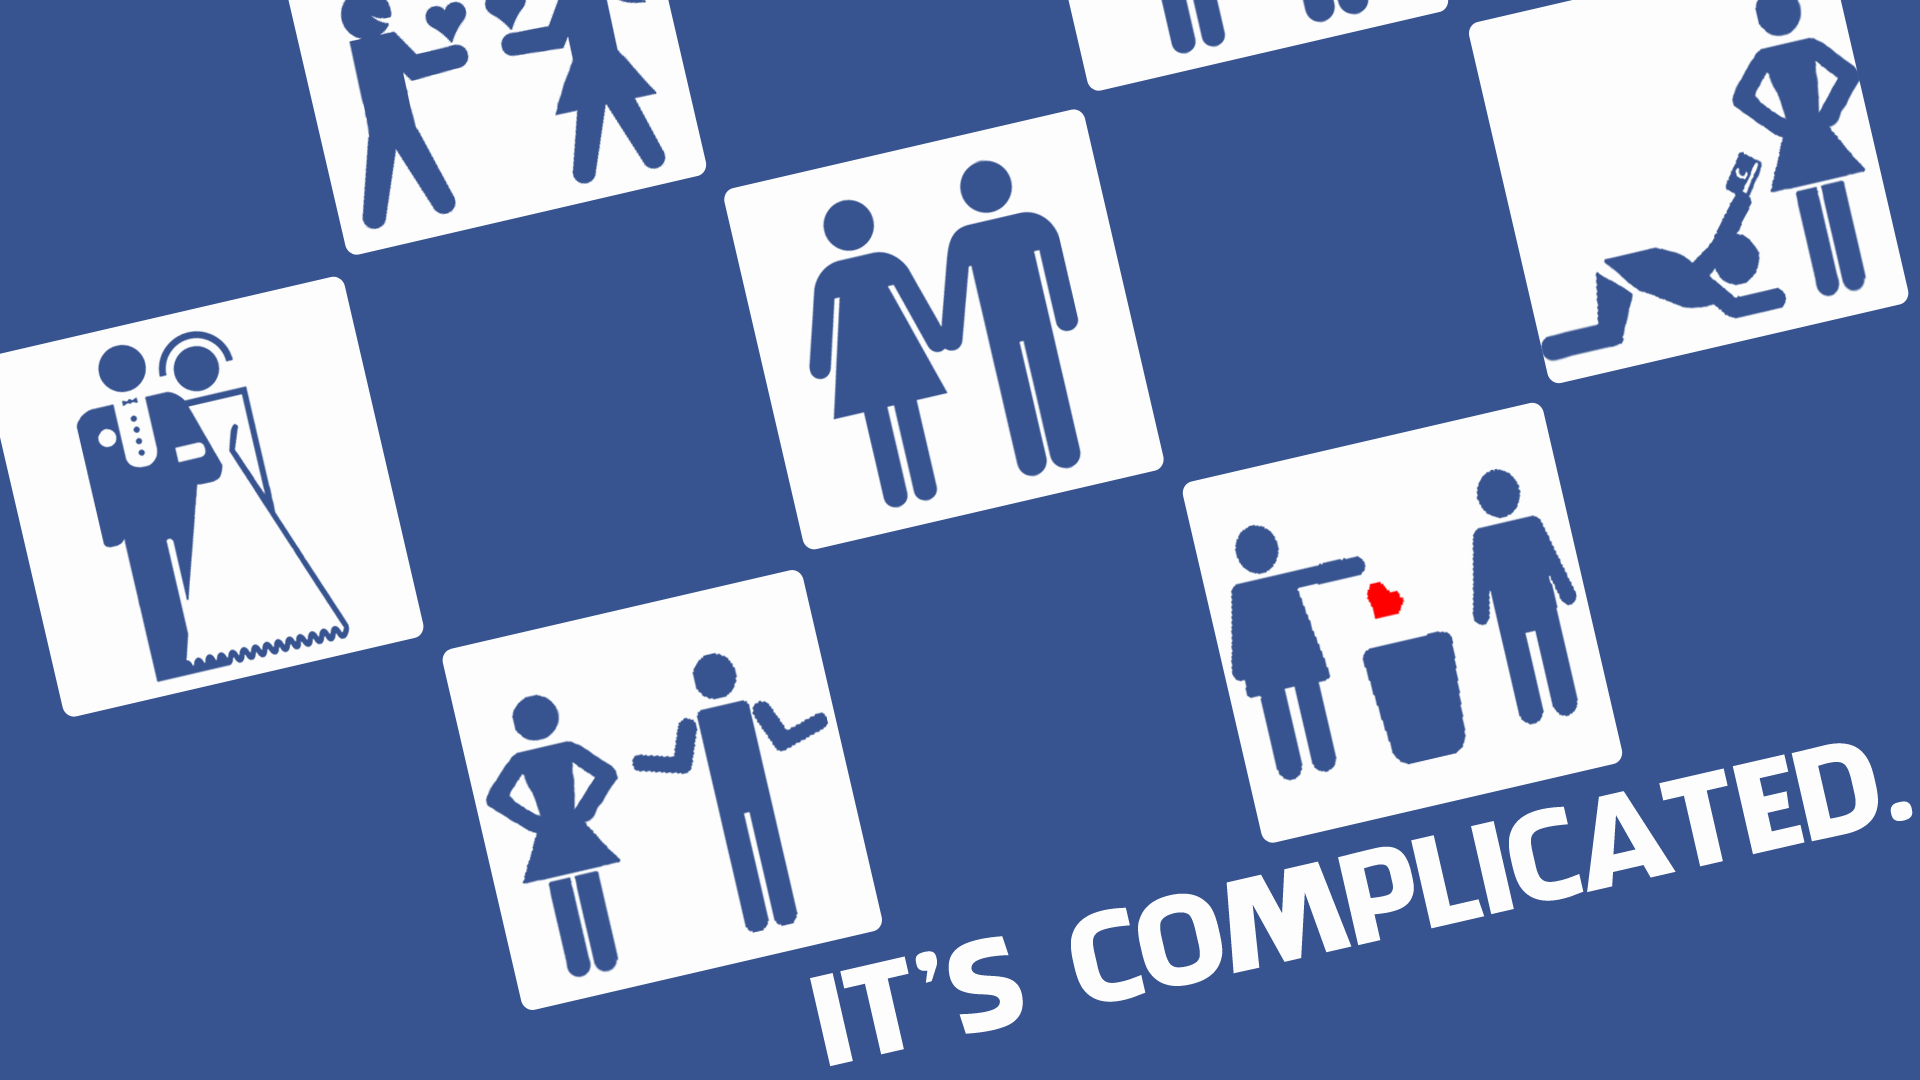 collegehumor dating its complicated Why do people make dating complicated  anyone who's dating or in a relationship should visit this website  its beautiful but complicated  37 views.